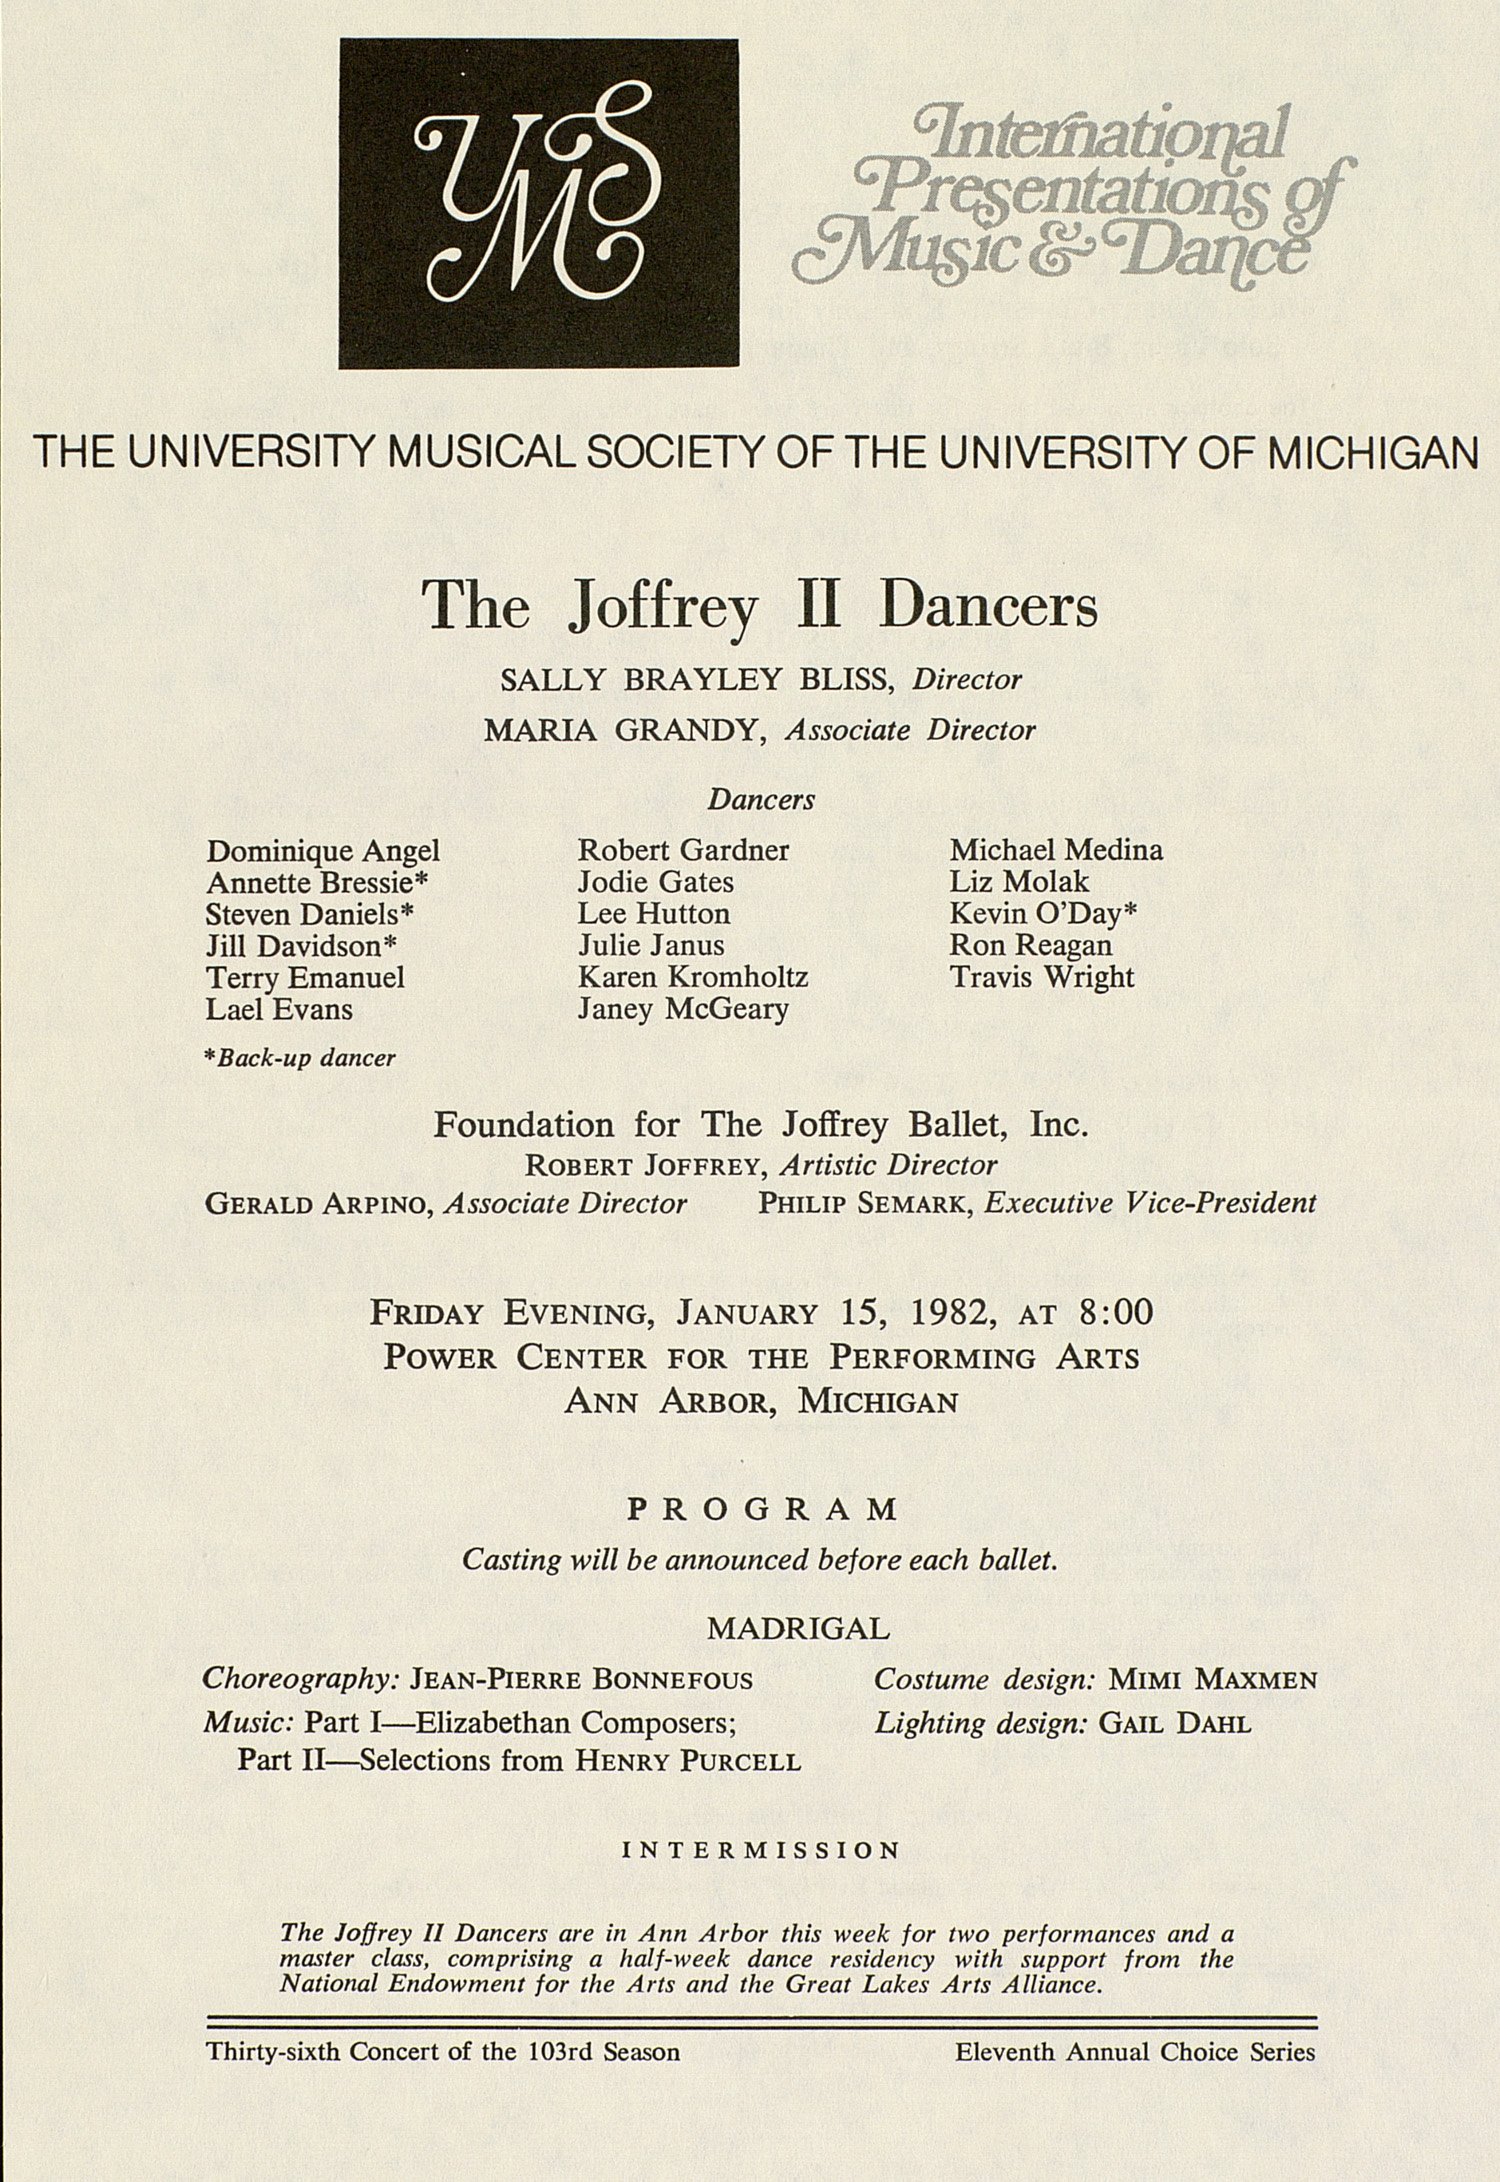 UMS Concert Program, January 15, 1982: The Joffrey II Dancers --  image